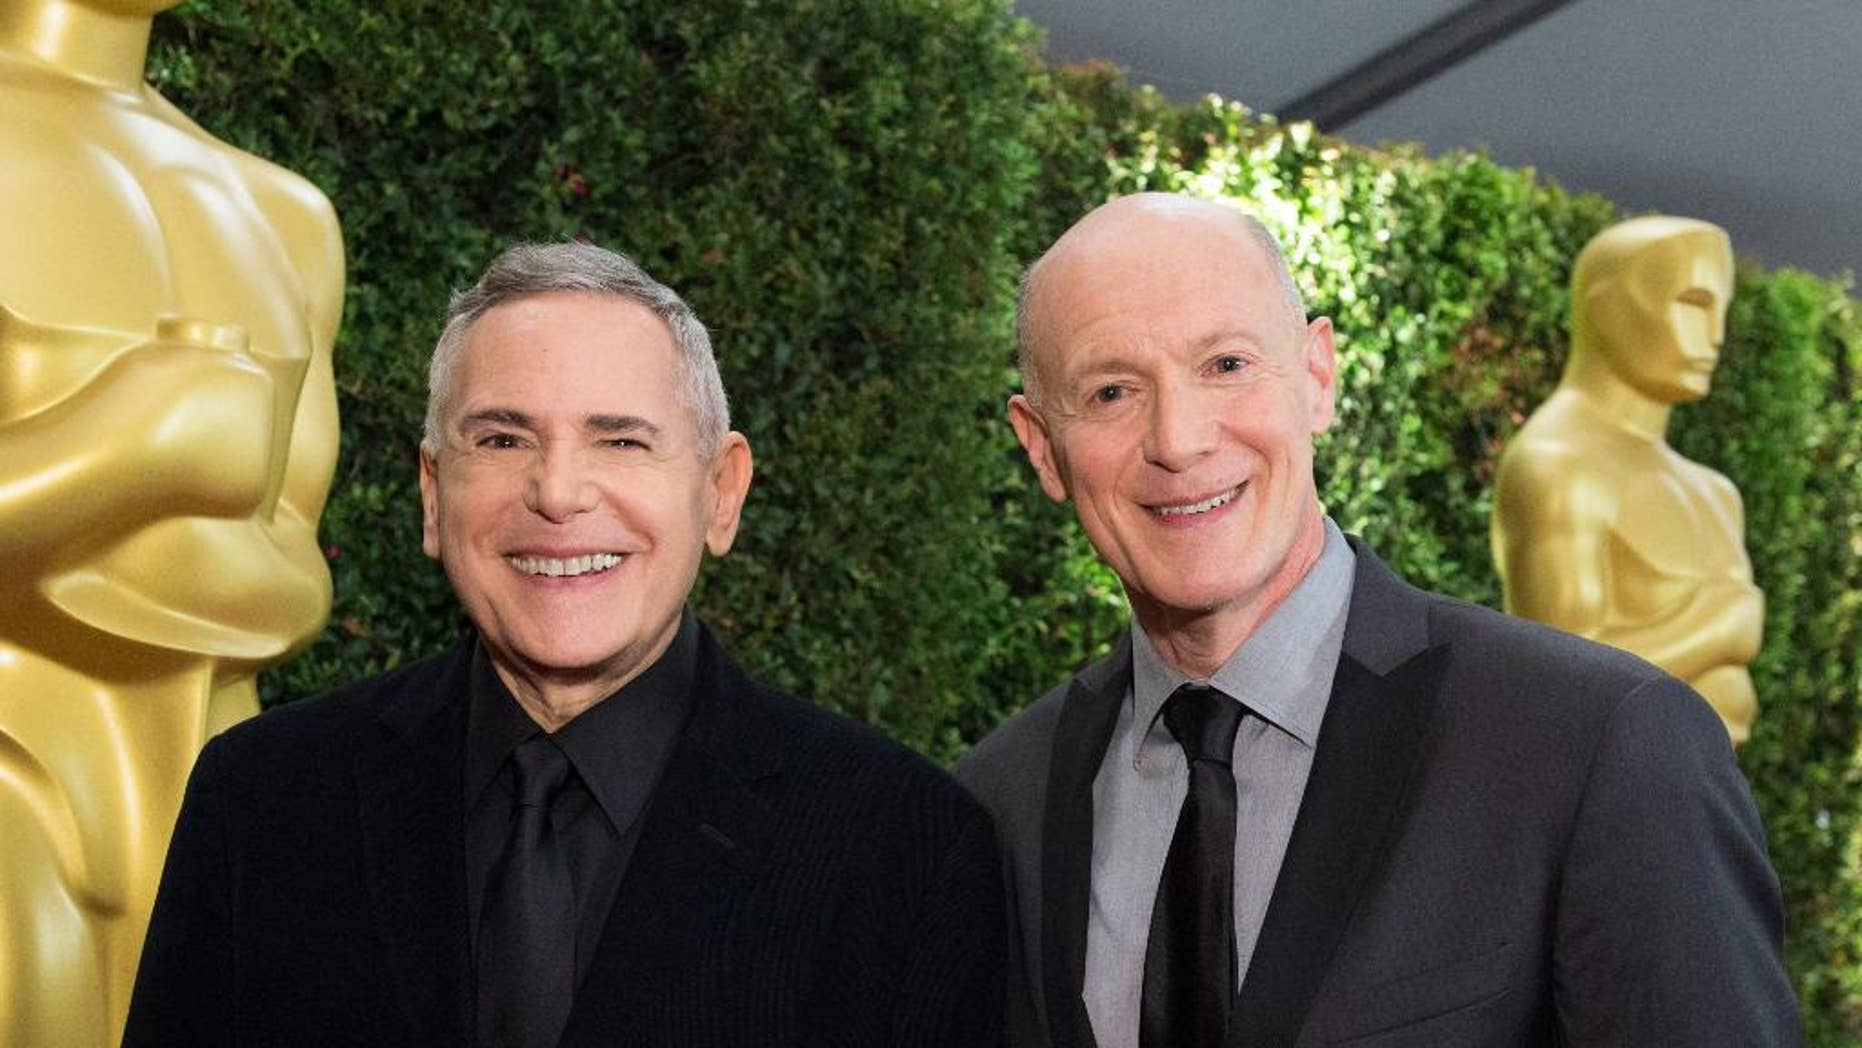 This Nov. 16, 2013 photo provided by courtesy of the Academy of Motion Picture Arts and Sciences shows producers Craig Zadan, left,  and Neil Meron attending the 2013 Governors Awards at The Ray Dolby Ballroom at Hollywood & Highland Center in Hollywood, Calif. The producers, Zadan and Meron, tell us what and what not to expect on this year's Oscar show and how they're keeping it fresh after three years on the job. The 87th annual Academy Awards are presented on Sunday, Feb. 22, 2015, in Los Angeles. (AP Photo/AMPAS, Richard Harbaugh)